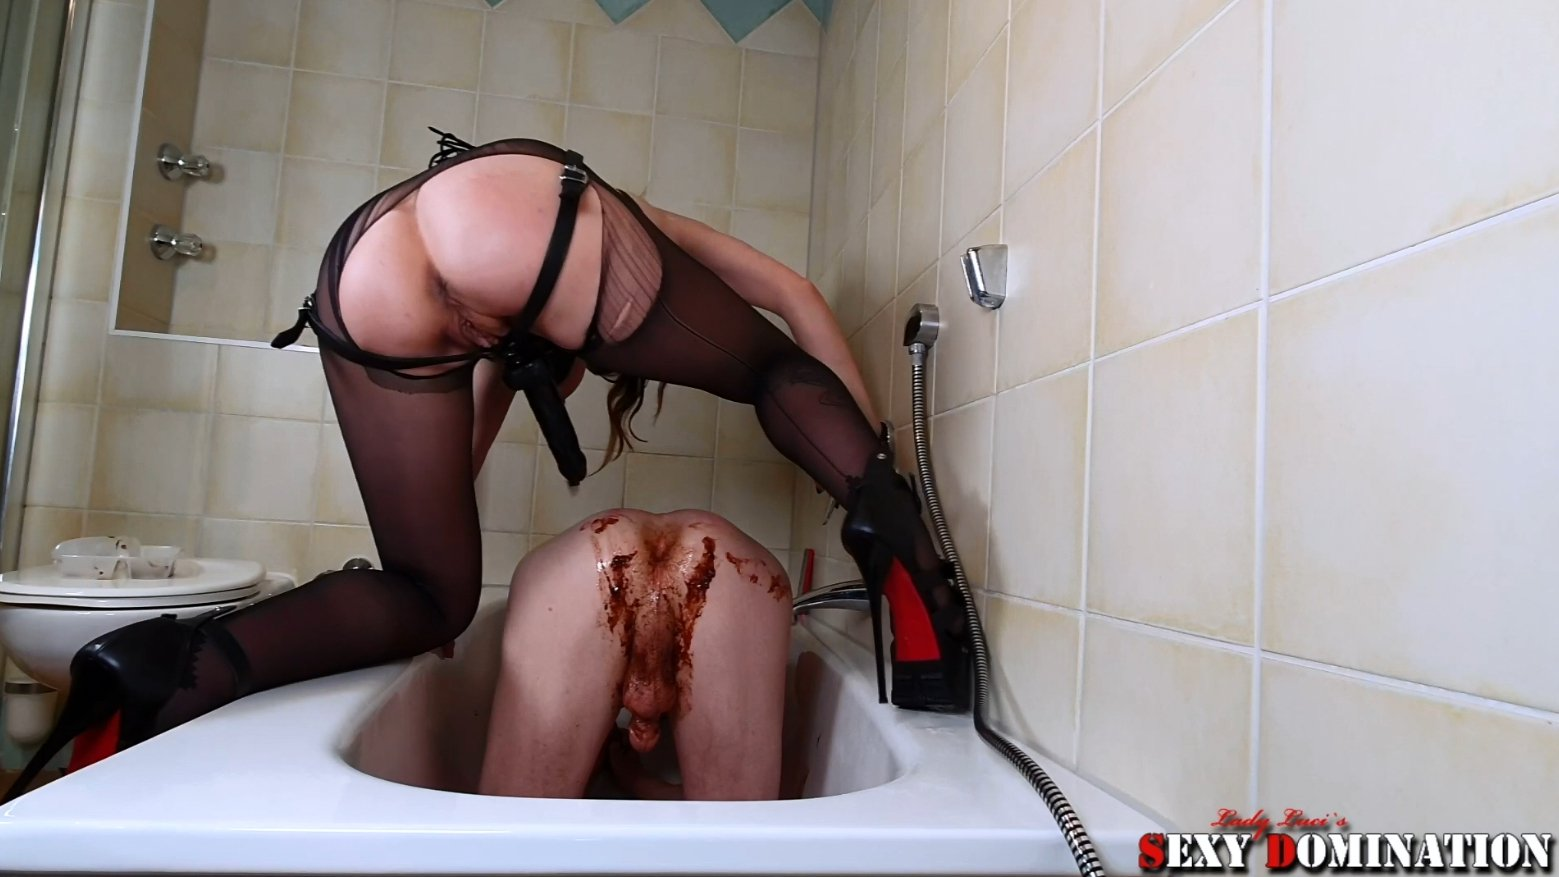 Extreme KV Excess in the bathtub of Lady Luci (Premium user request by Bert) with Lady Luci 25,99 €